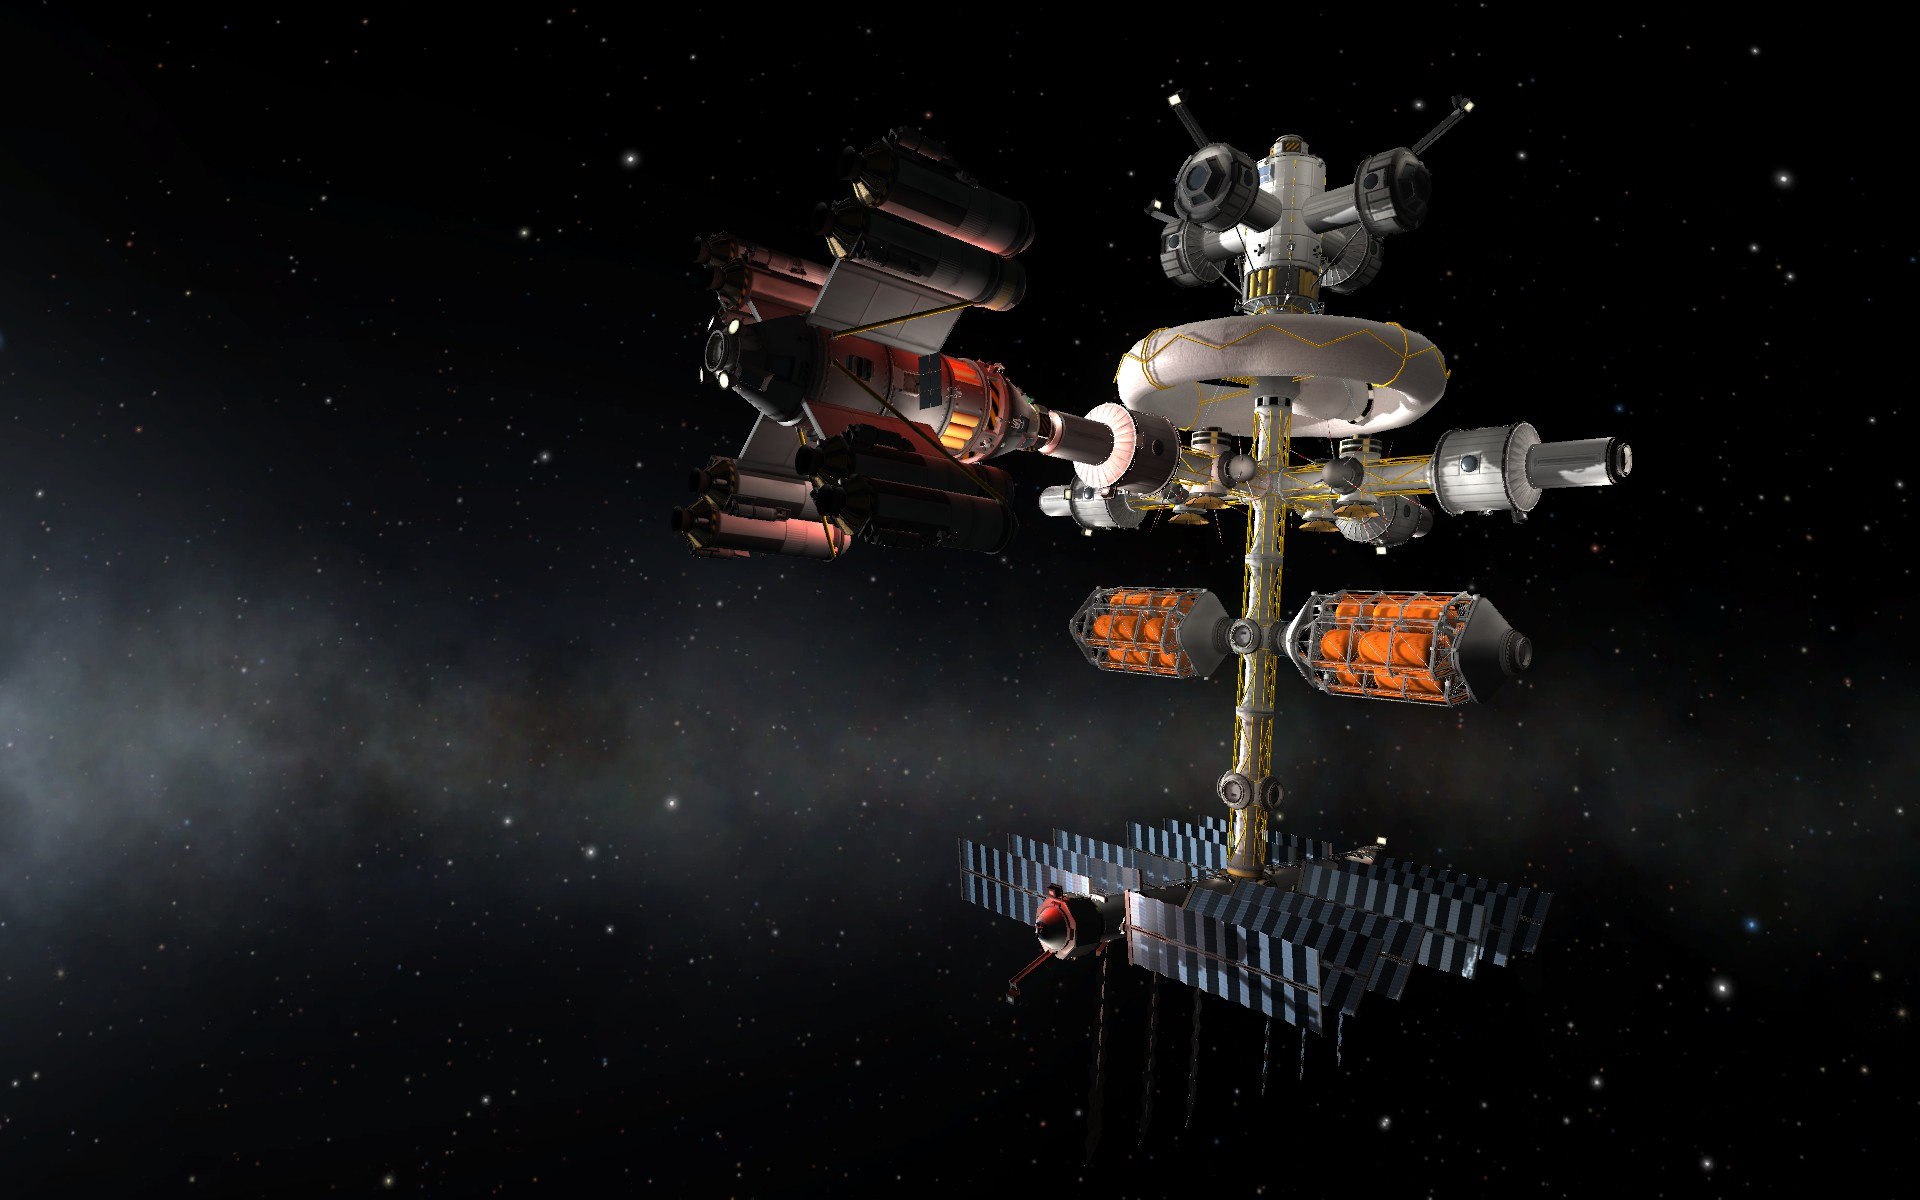 kerbal space program space station - photo #12